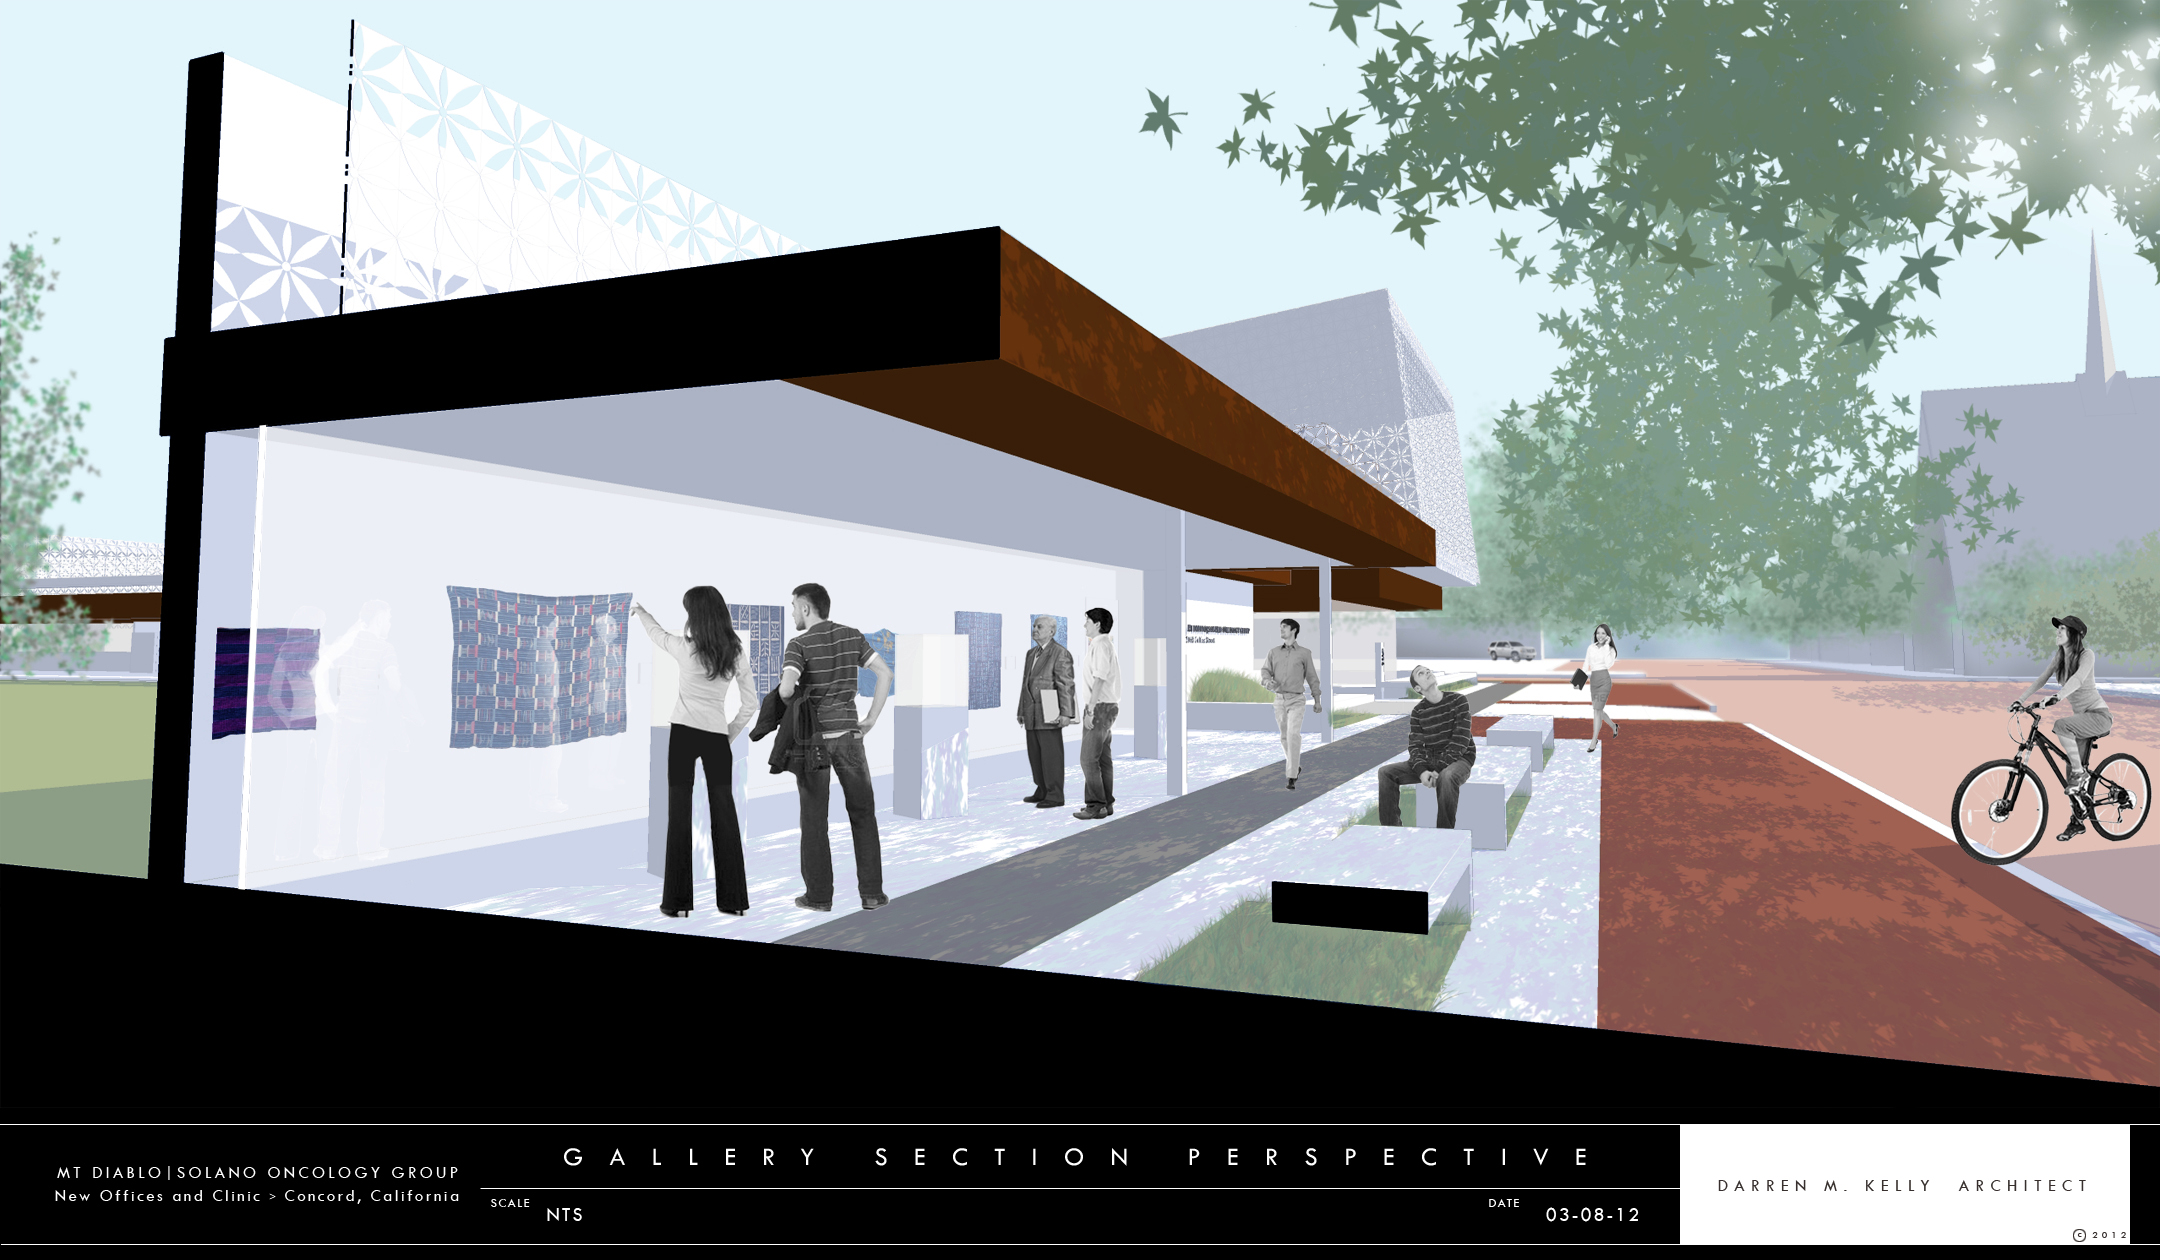 colfax st gallery sect persp - EXEC SUMMARY.jpg